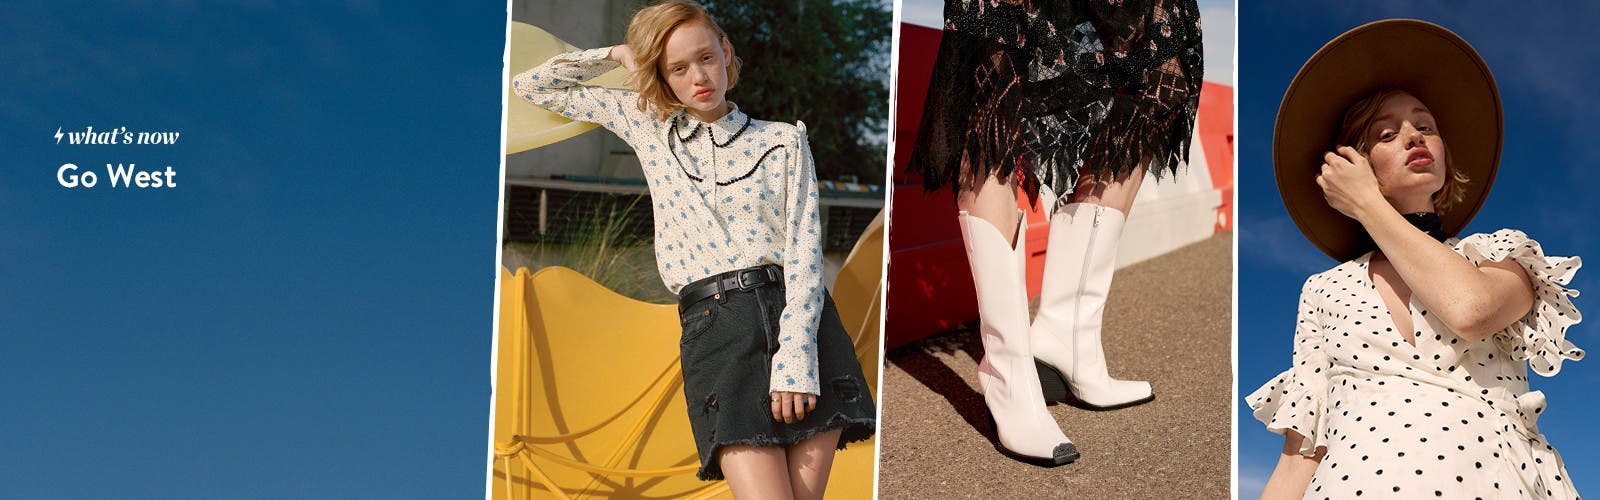 Topshop and trend clothing, shoes, handbags and accessories.